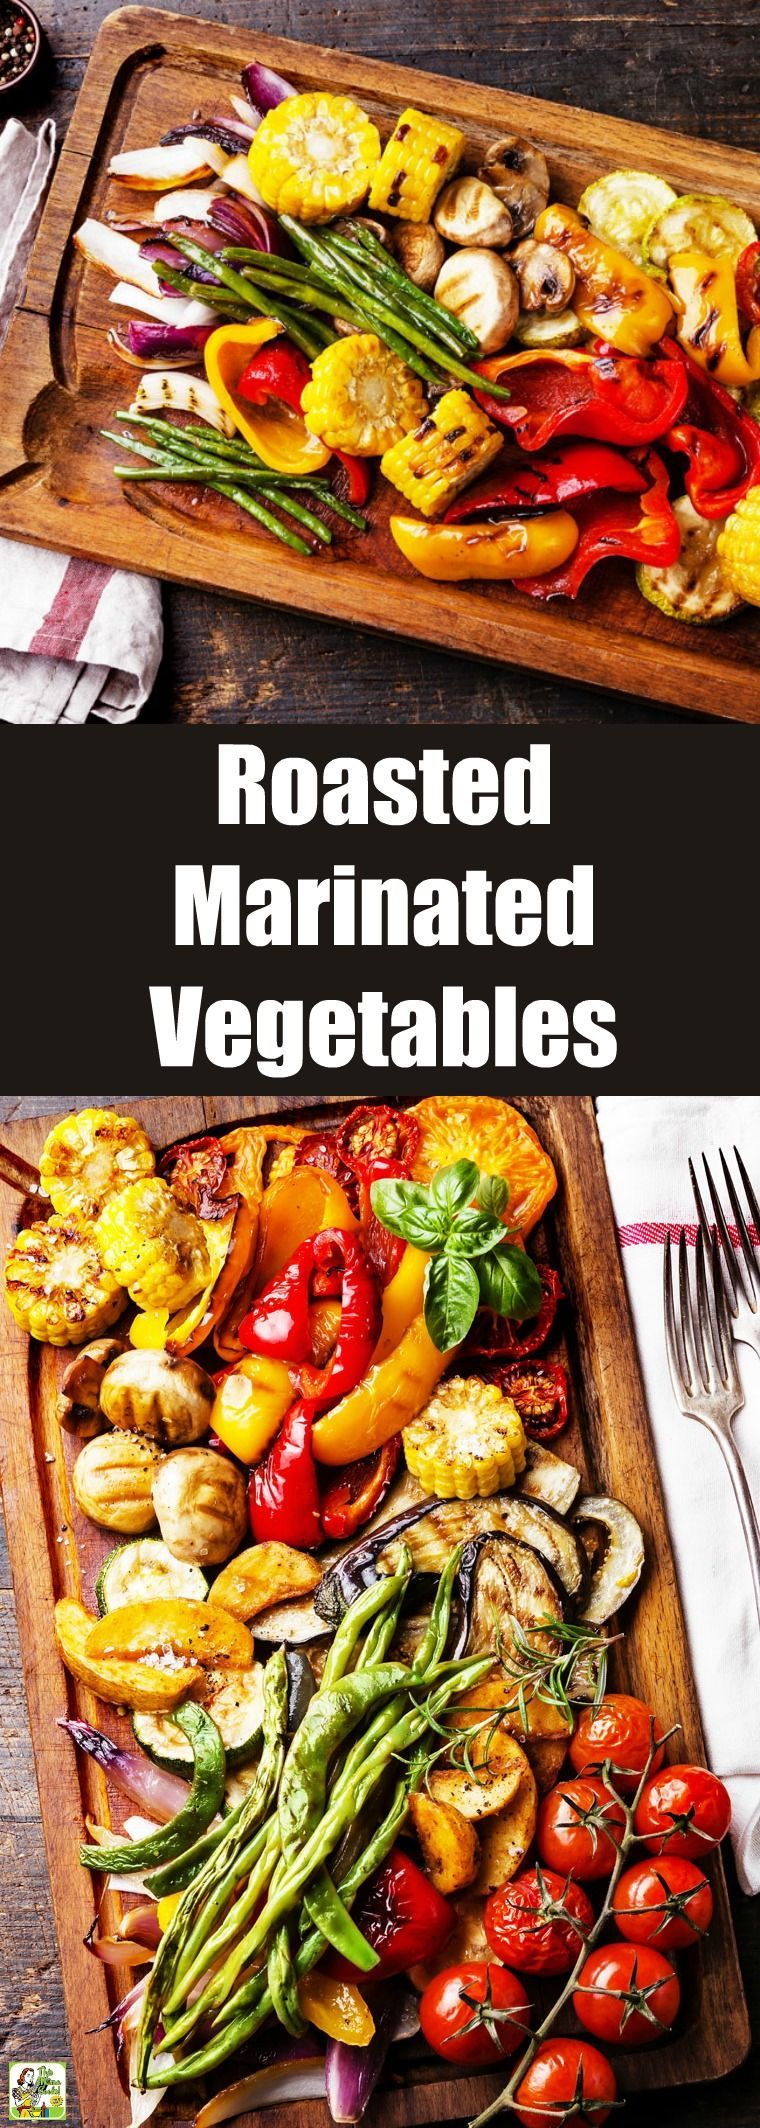 Roasted Marinated Vegetables can be cooked in the oven. Or make roasted grilled marinated vegetables on your grill using your favorite veggies. Naturally vegetarian and vegan. Goes great with your favorite dinner dishes. Marinated Vegetables can be cooked in the oven. Or make roasted grilled marinated vegetables on your grill using your favorite veggies. Naturally vegetarian and vegan. Goes great with your favorite dinner dishes.